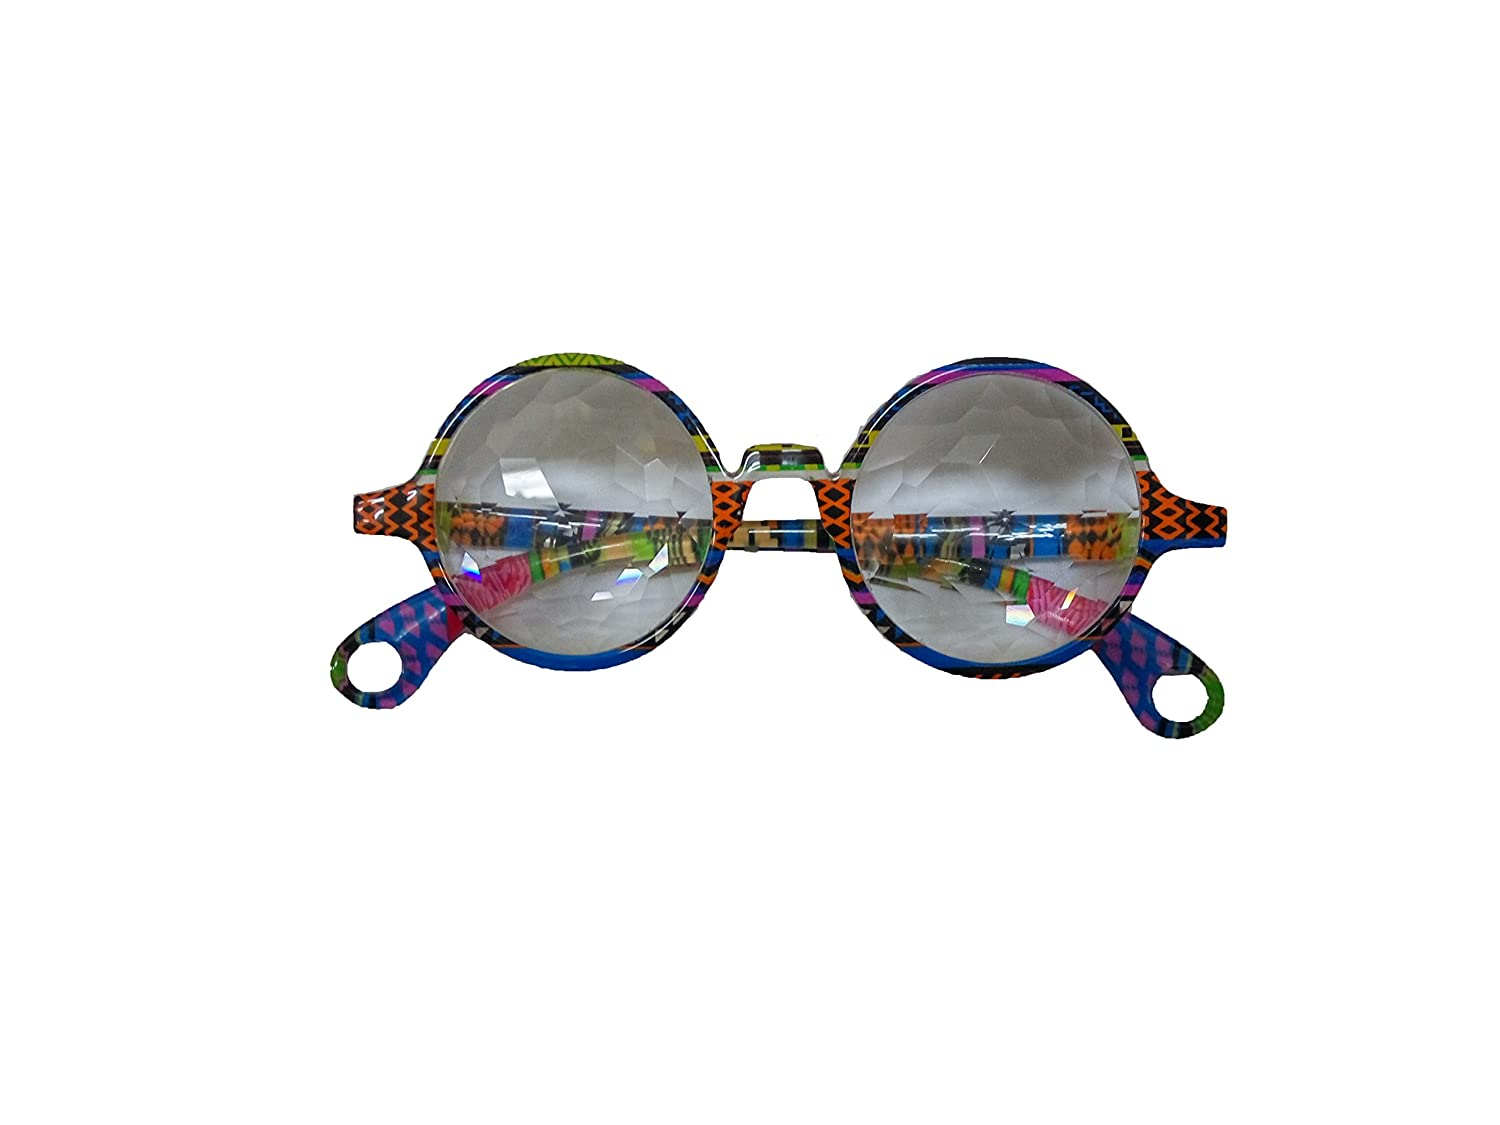 Sparkling John Lennon's Kaleidoscope Glasses with Transparent Lenses Izgut Ltd